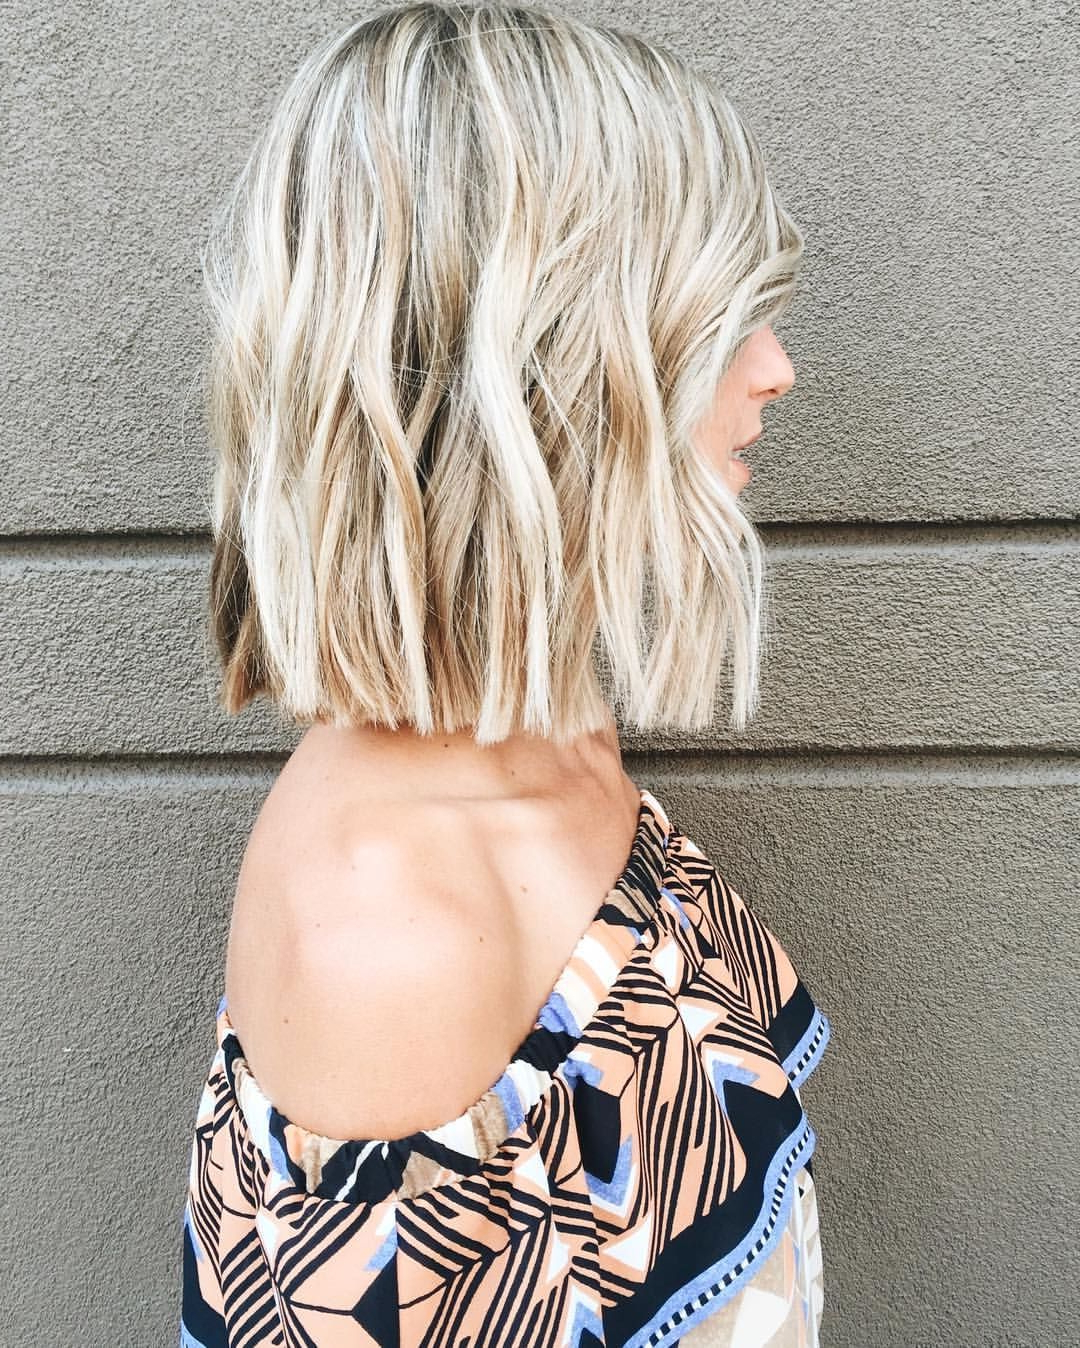 Widely Used Blunt Medium Haircuts In 60 Gorgeous Blunt Cut Hairstyles – The Haircut That Works On (View 17 of 20)